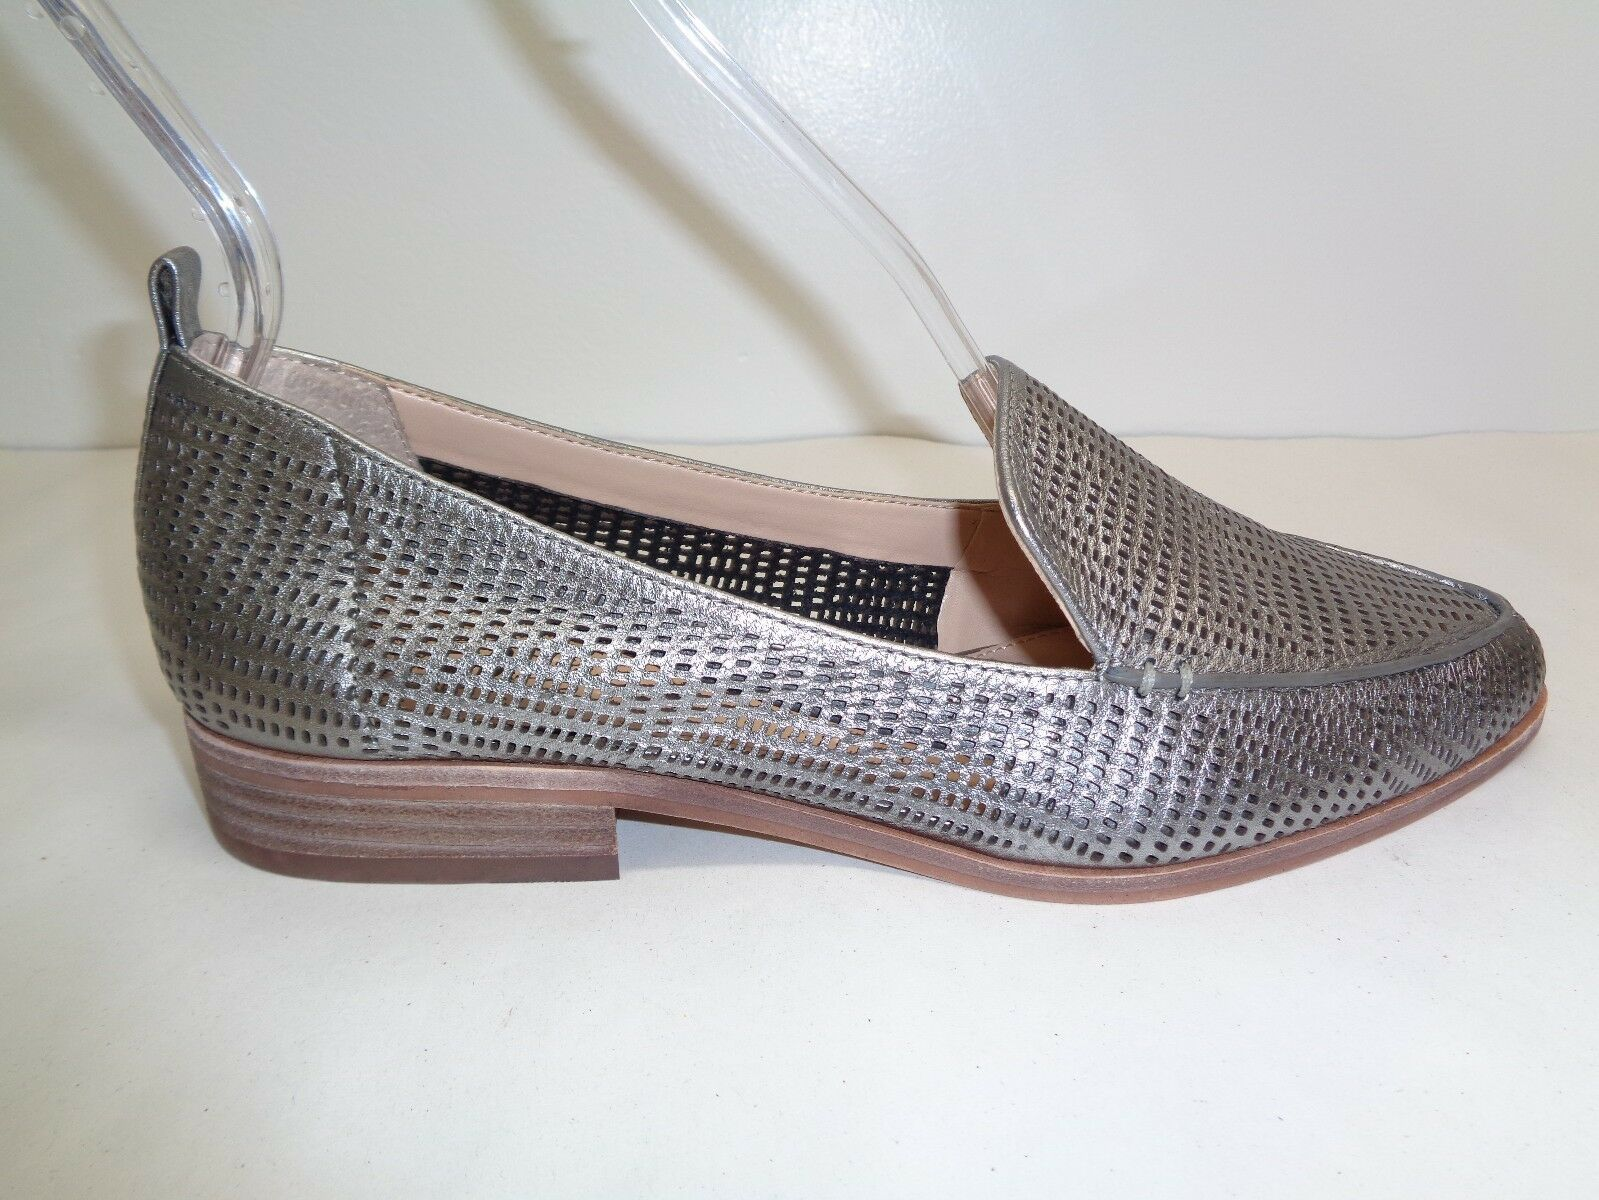 Vince Camuto Size 8.5 M KADE Silver Perforated Leather Loafers New Womens Shoes - $98.01